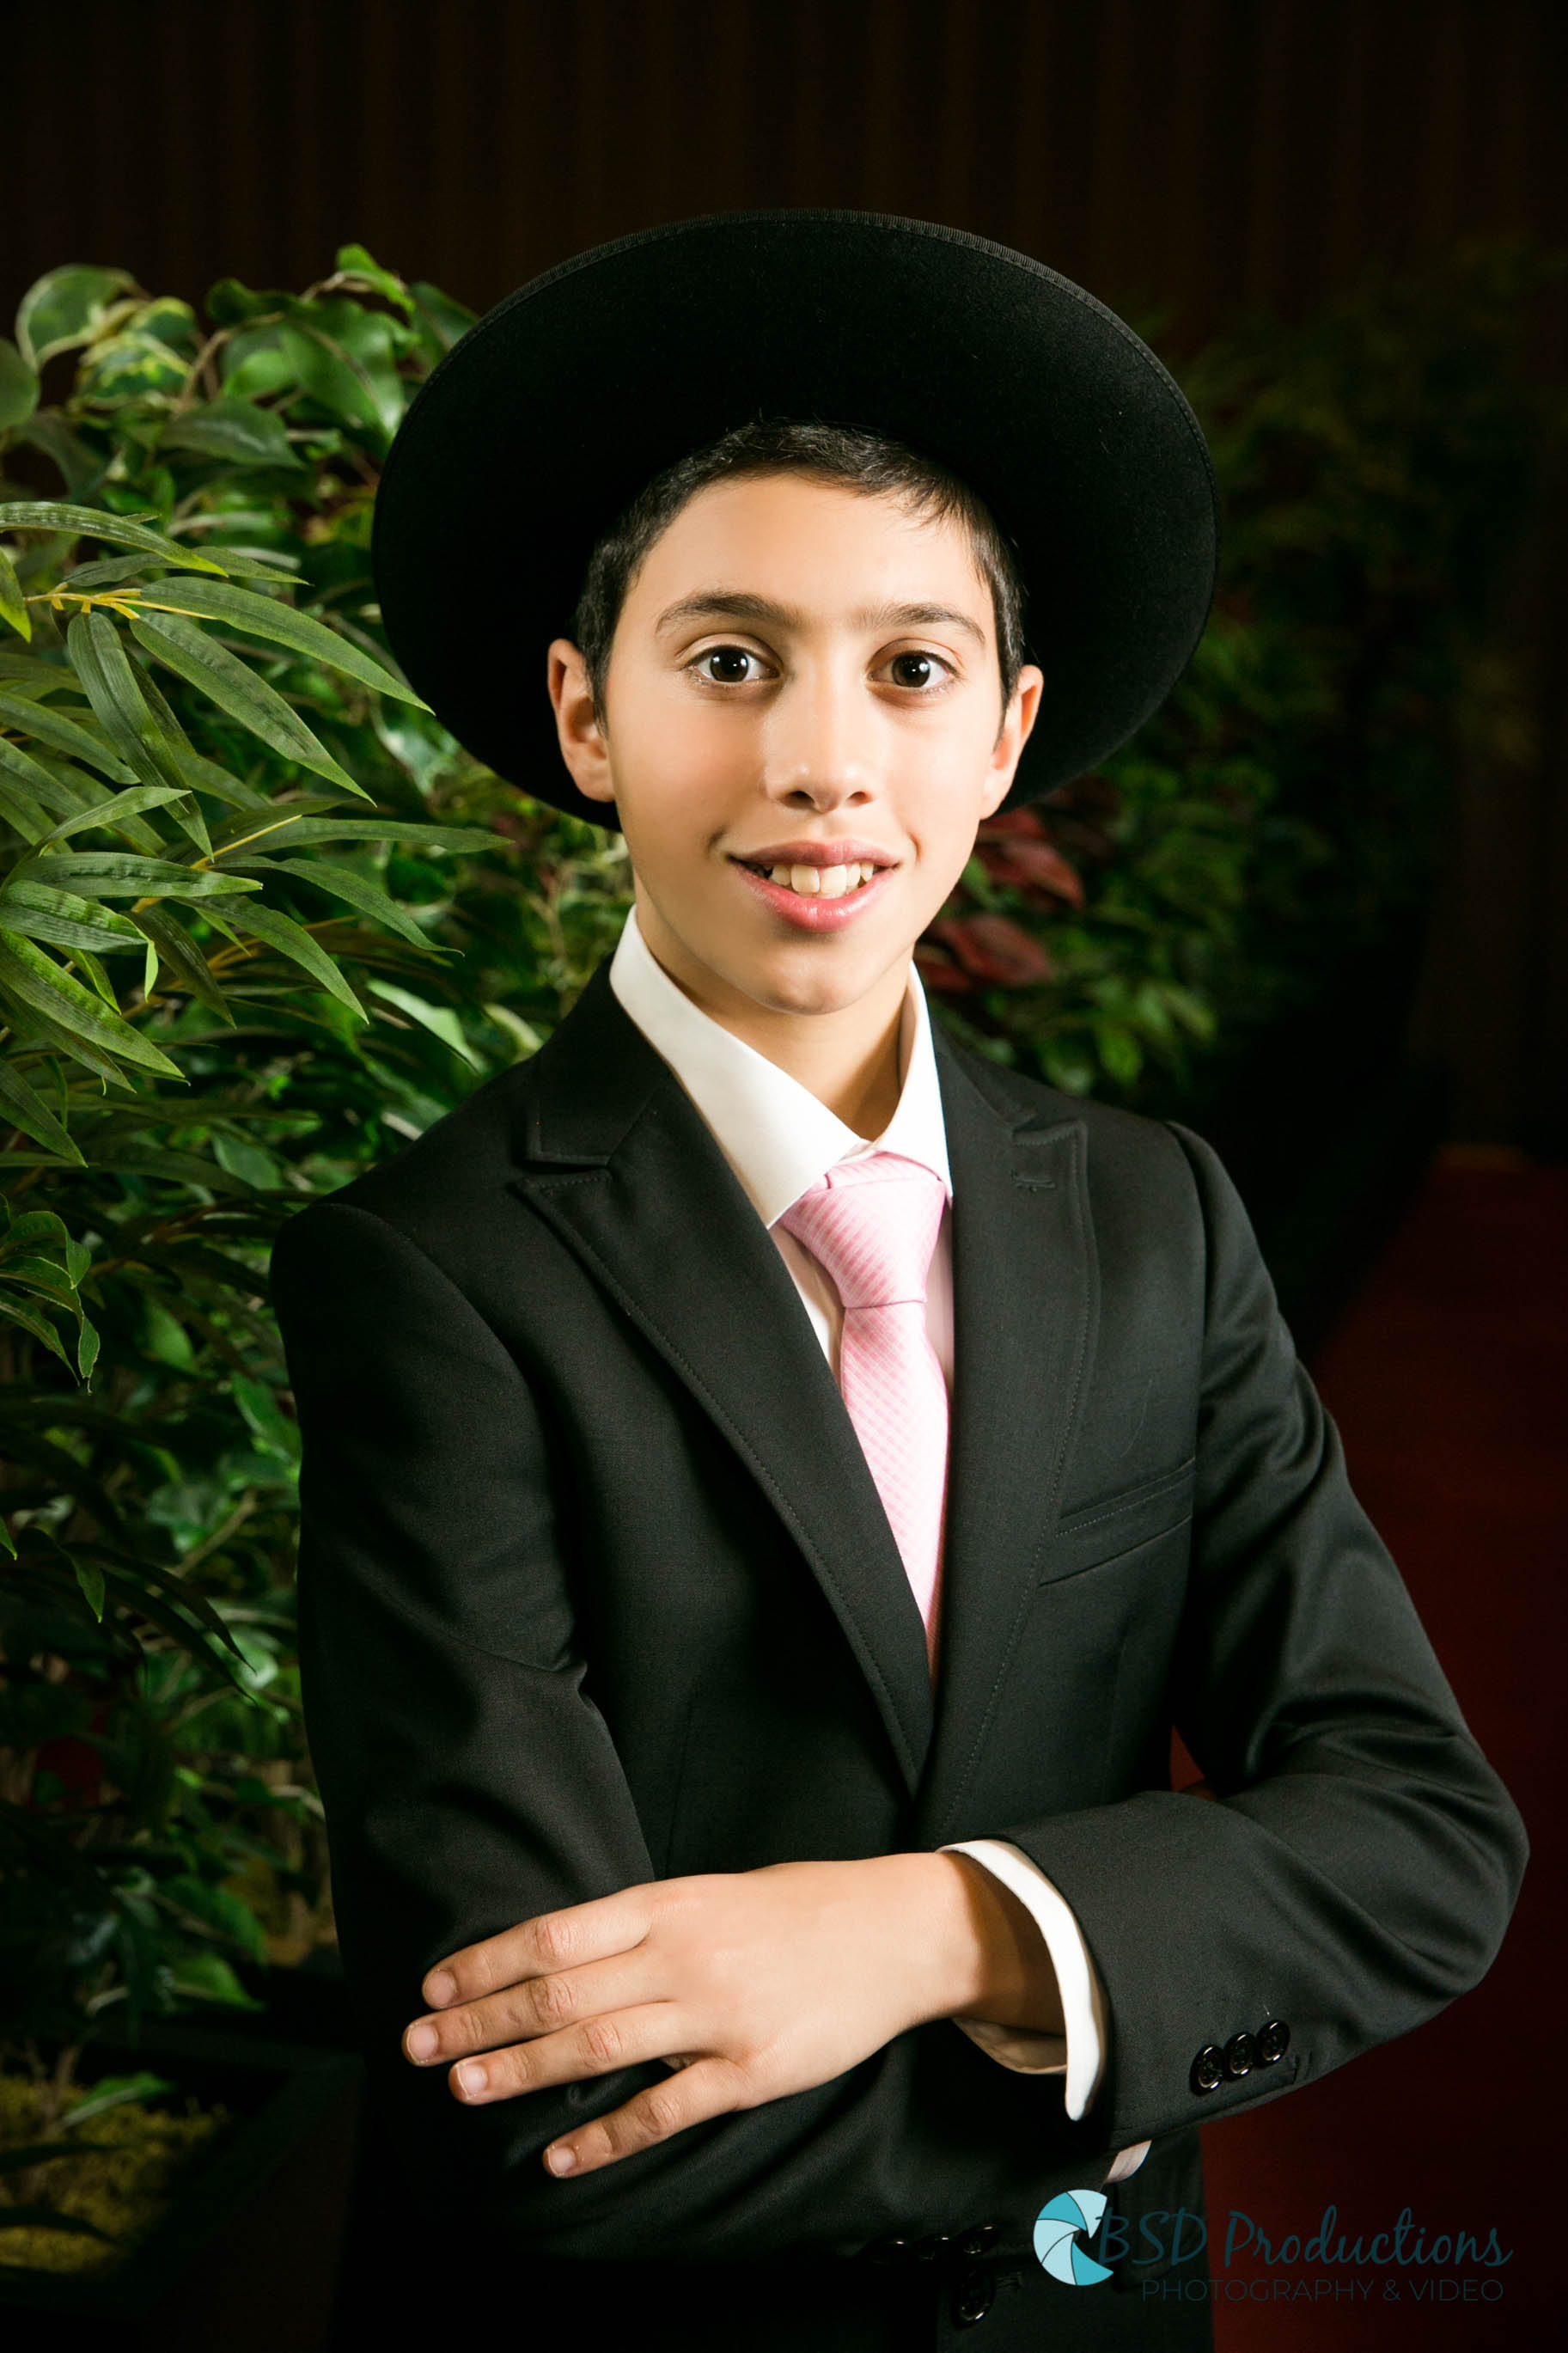 D_R_3555 Bar Mitzvah – BSD Productions Photography